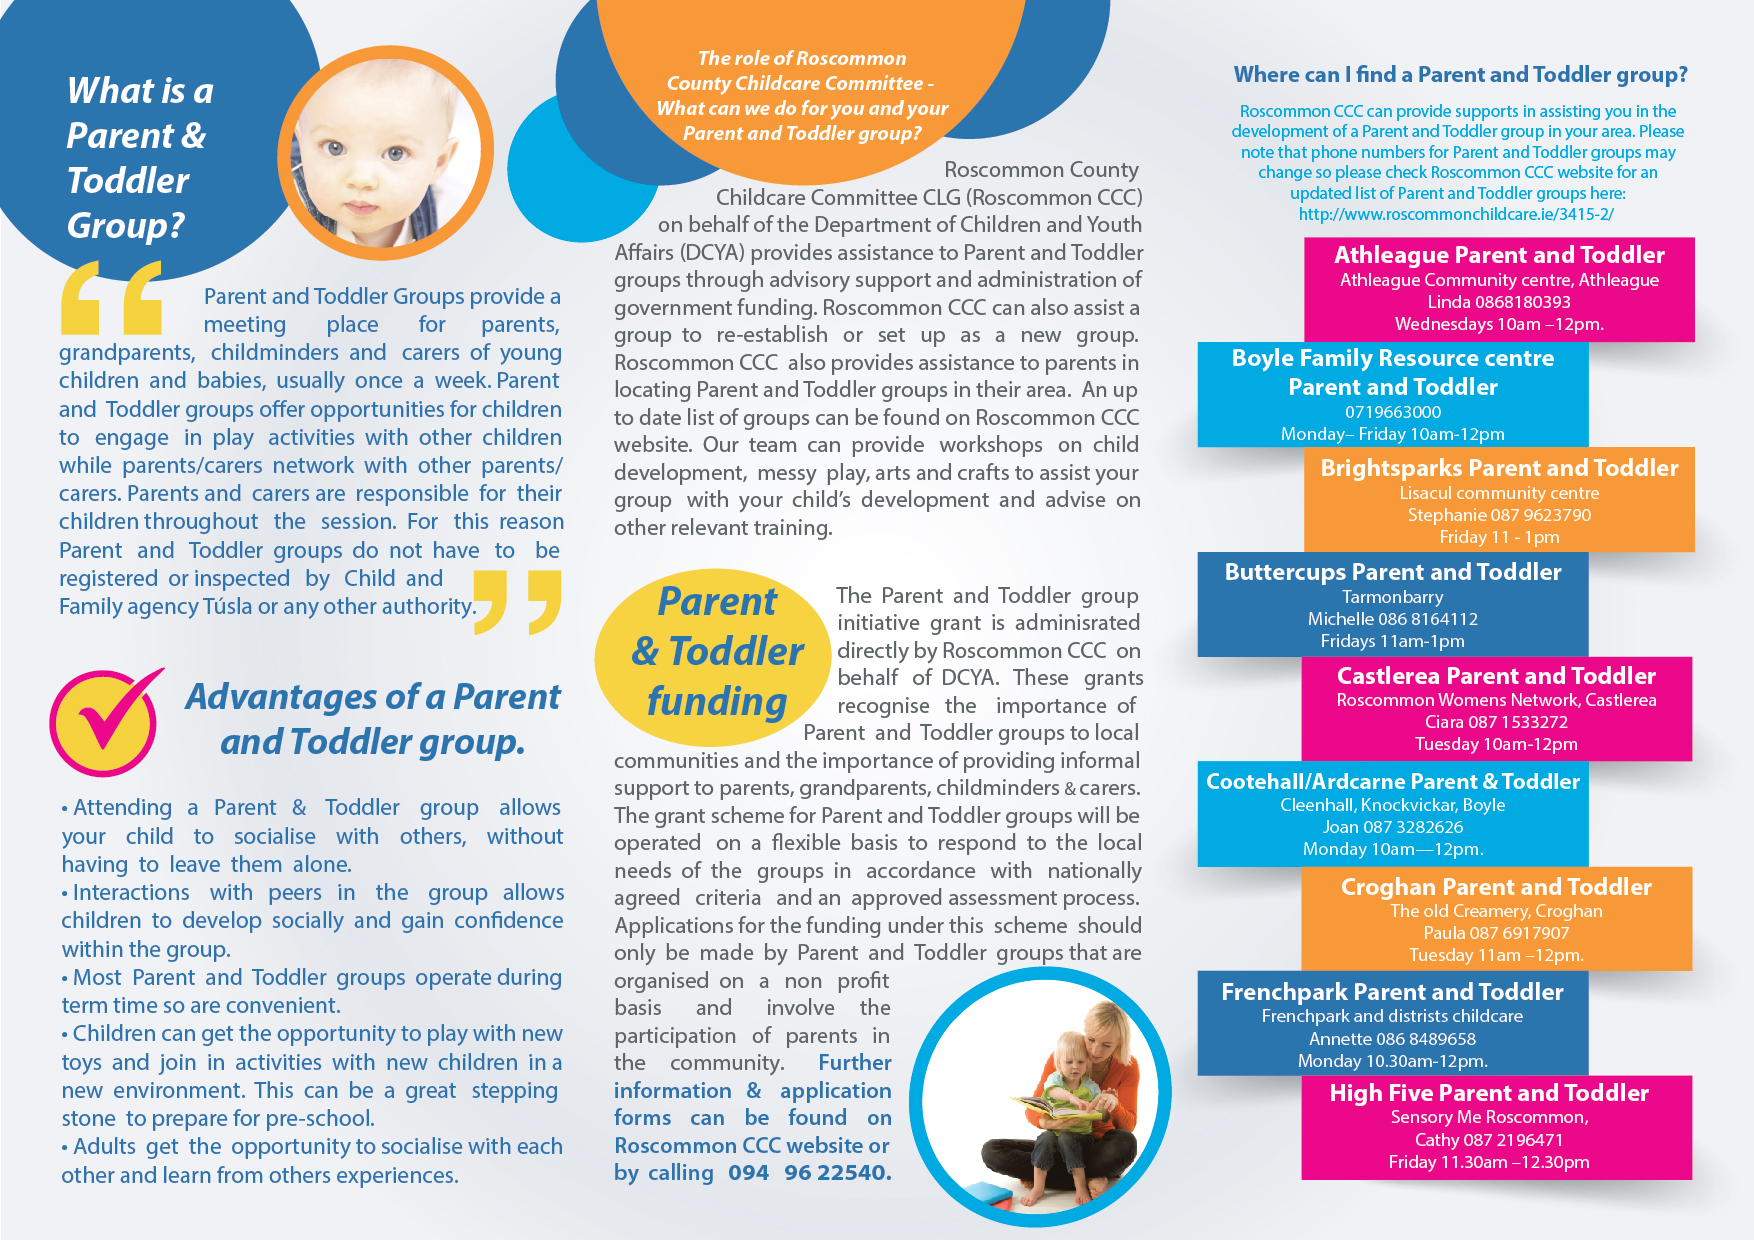 Parent & Toddler Groups - Roscommon Childcare Committee